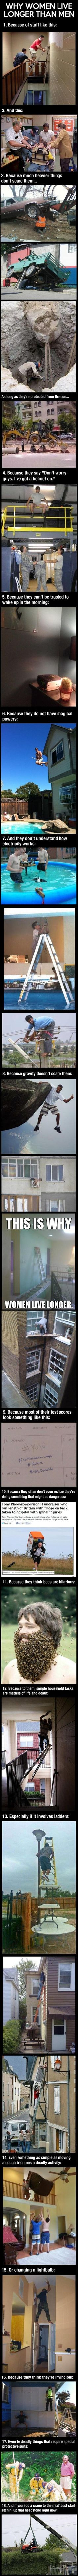 Here Are 18 Reasons Why Women Live Longer Than Men... - (oh Fuq!)